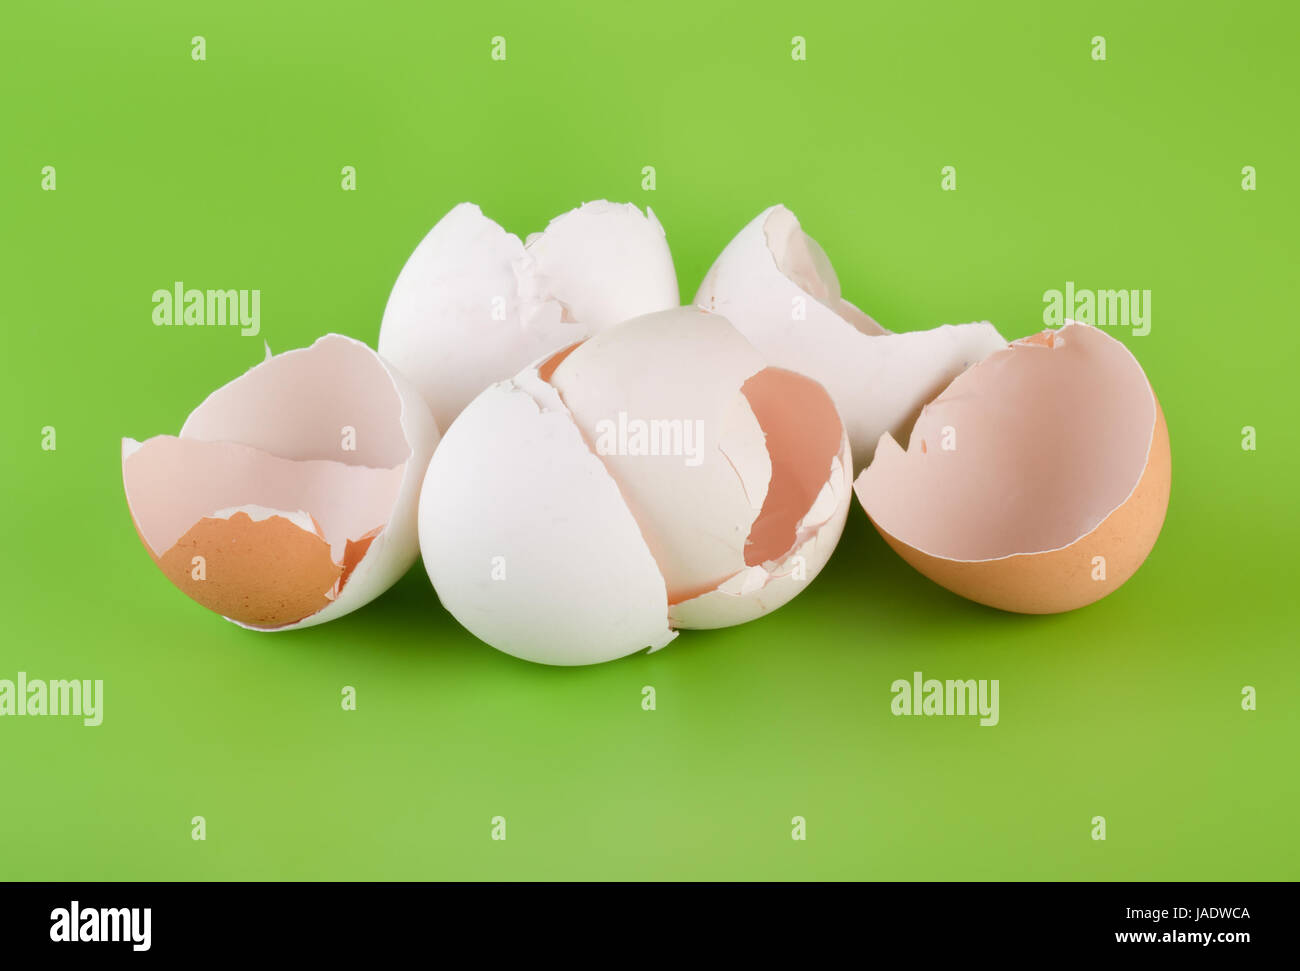 Group pieces of egg shell on a green background - Stock Image